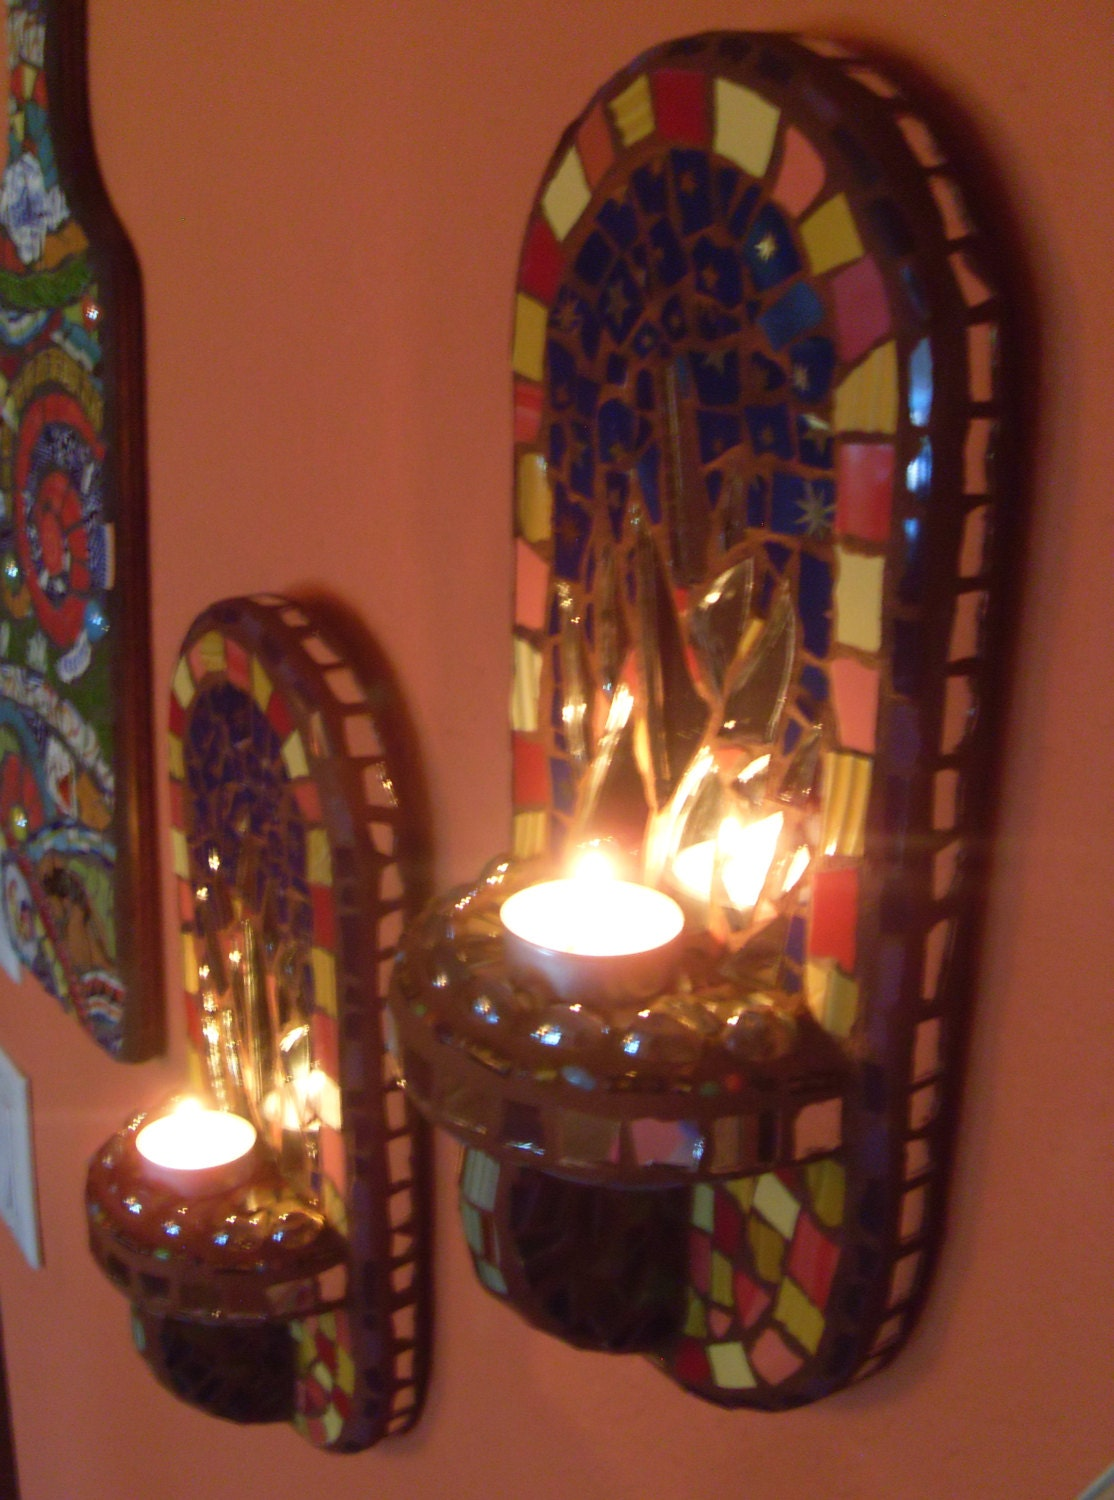 12 tall mosaic art mirror wall sconces votive candle. Black Bedroom Furniture Sets. Home Design Ideas